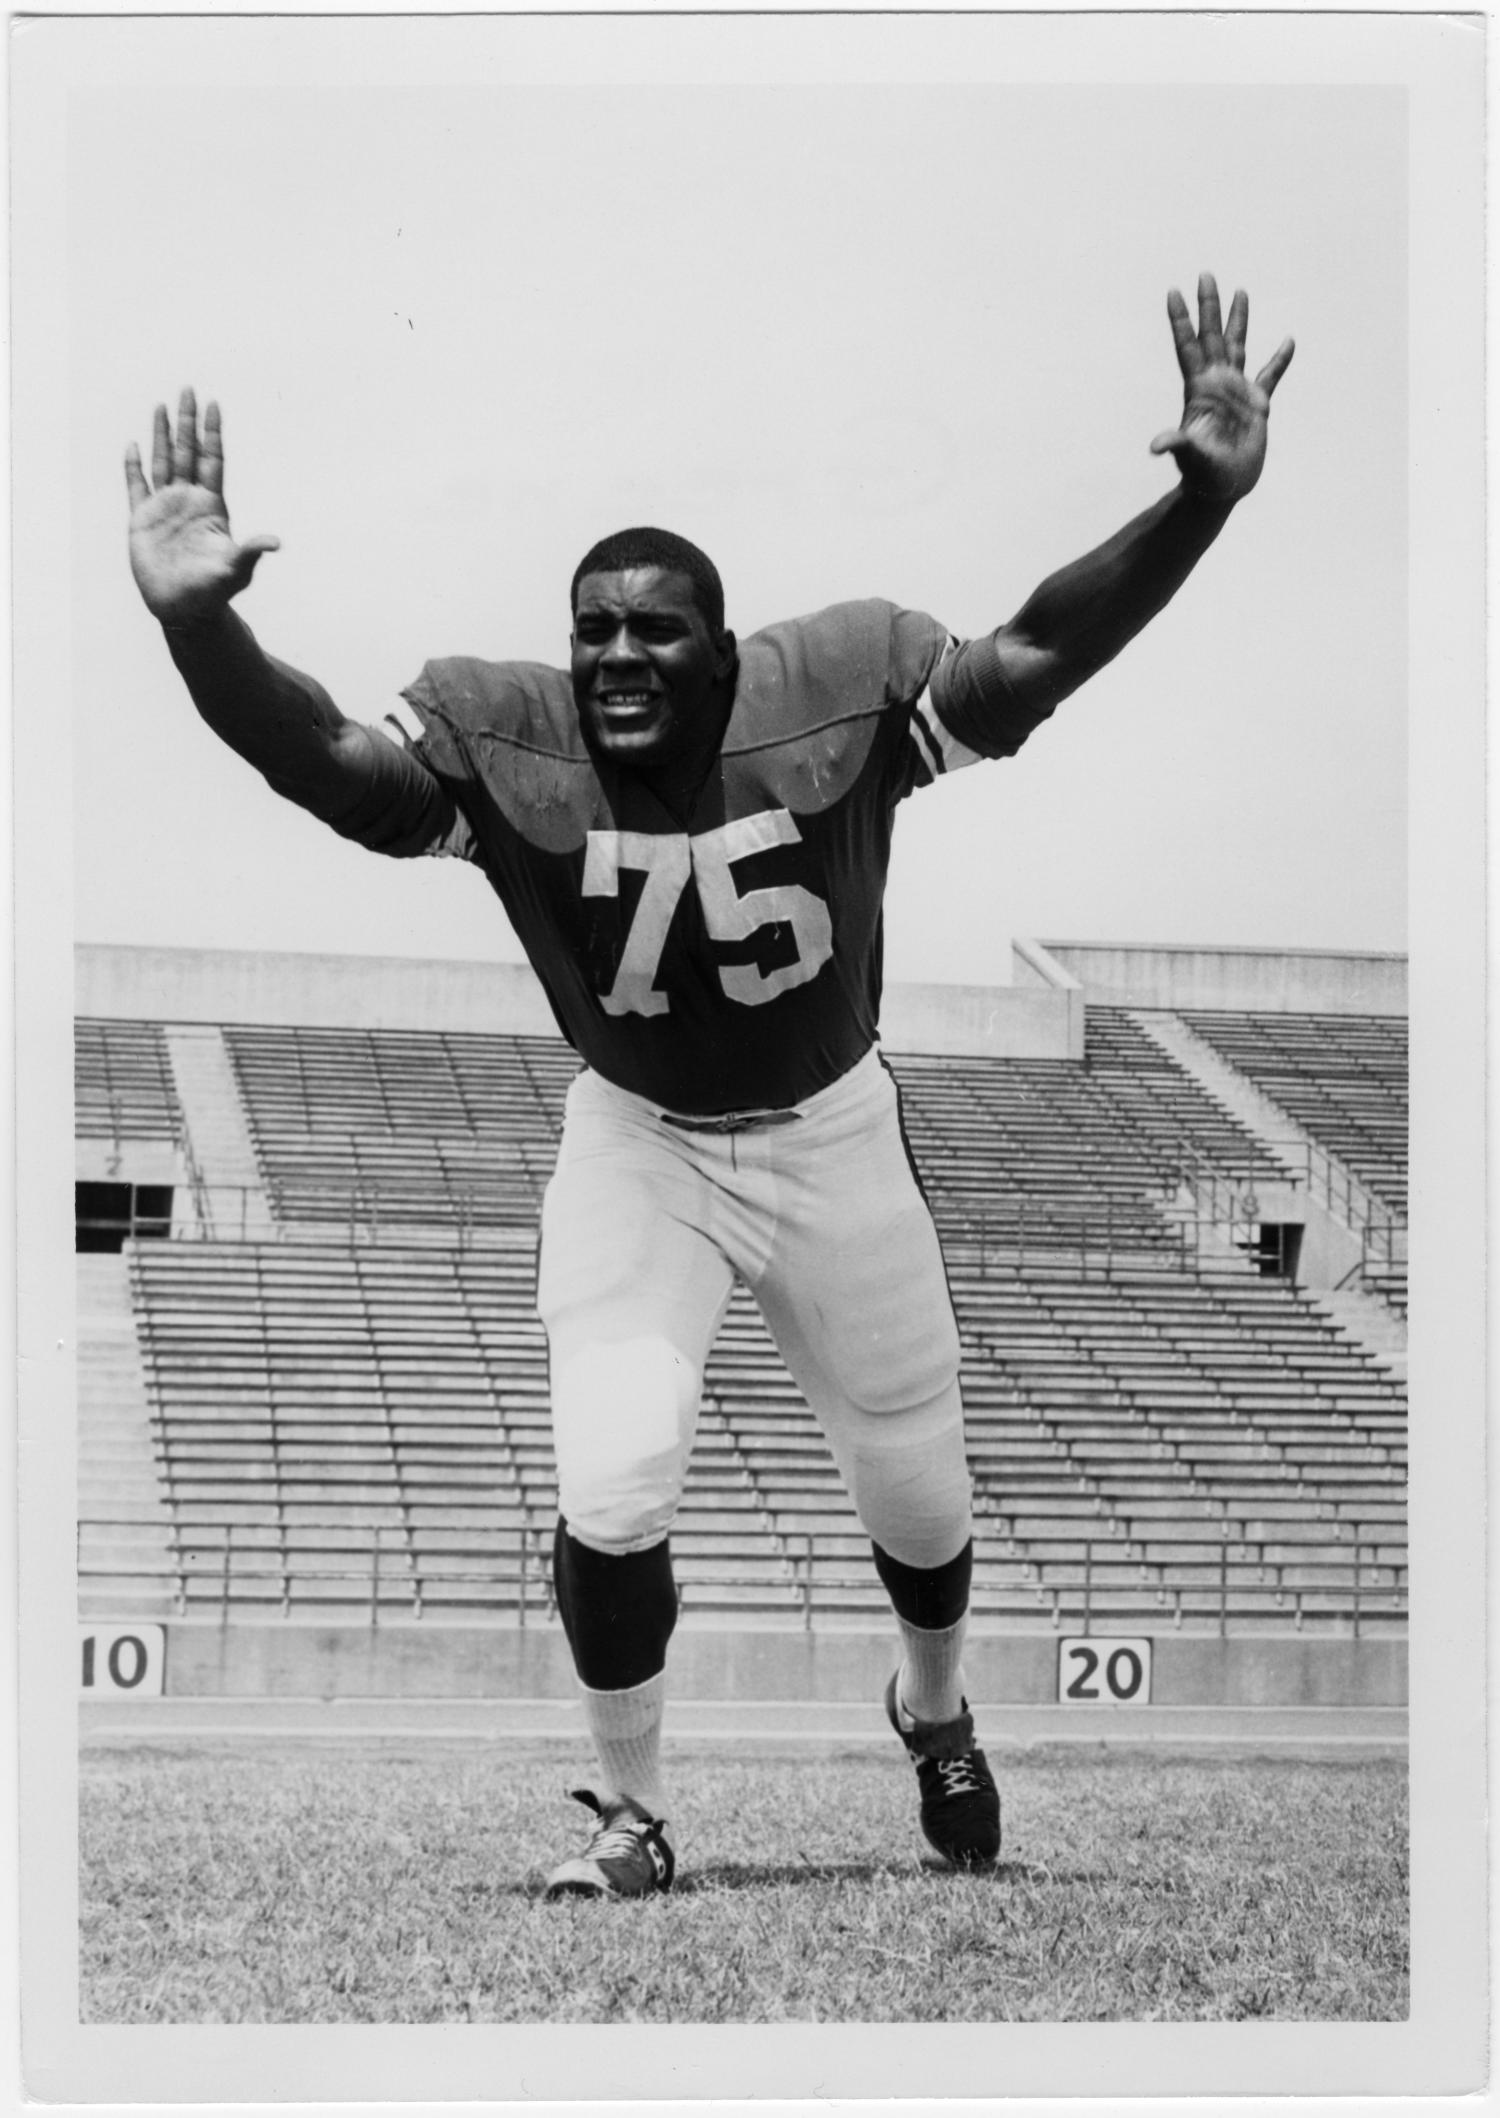 Joe Greene, when he was a member of the Mean Green football team. This photo was the inspiration for his statue at Apogee Stadium's Gate 2.